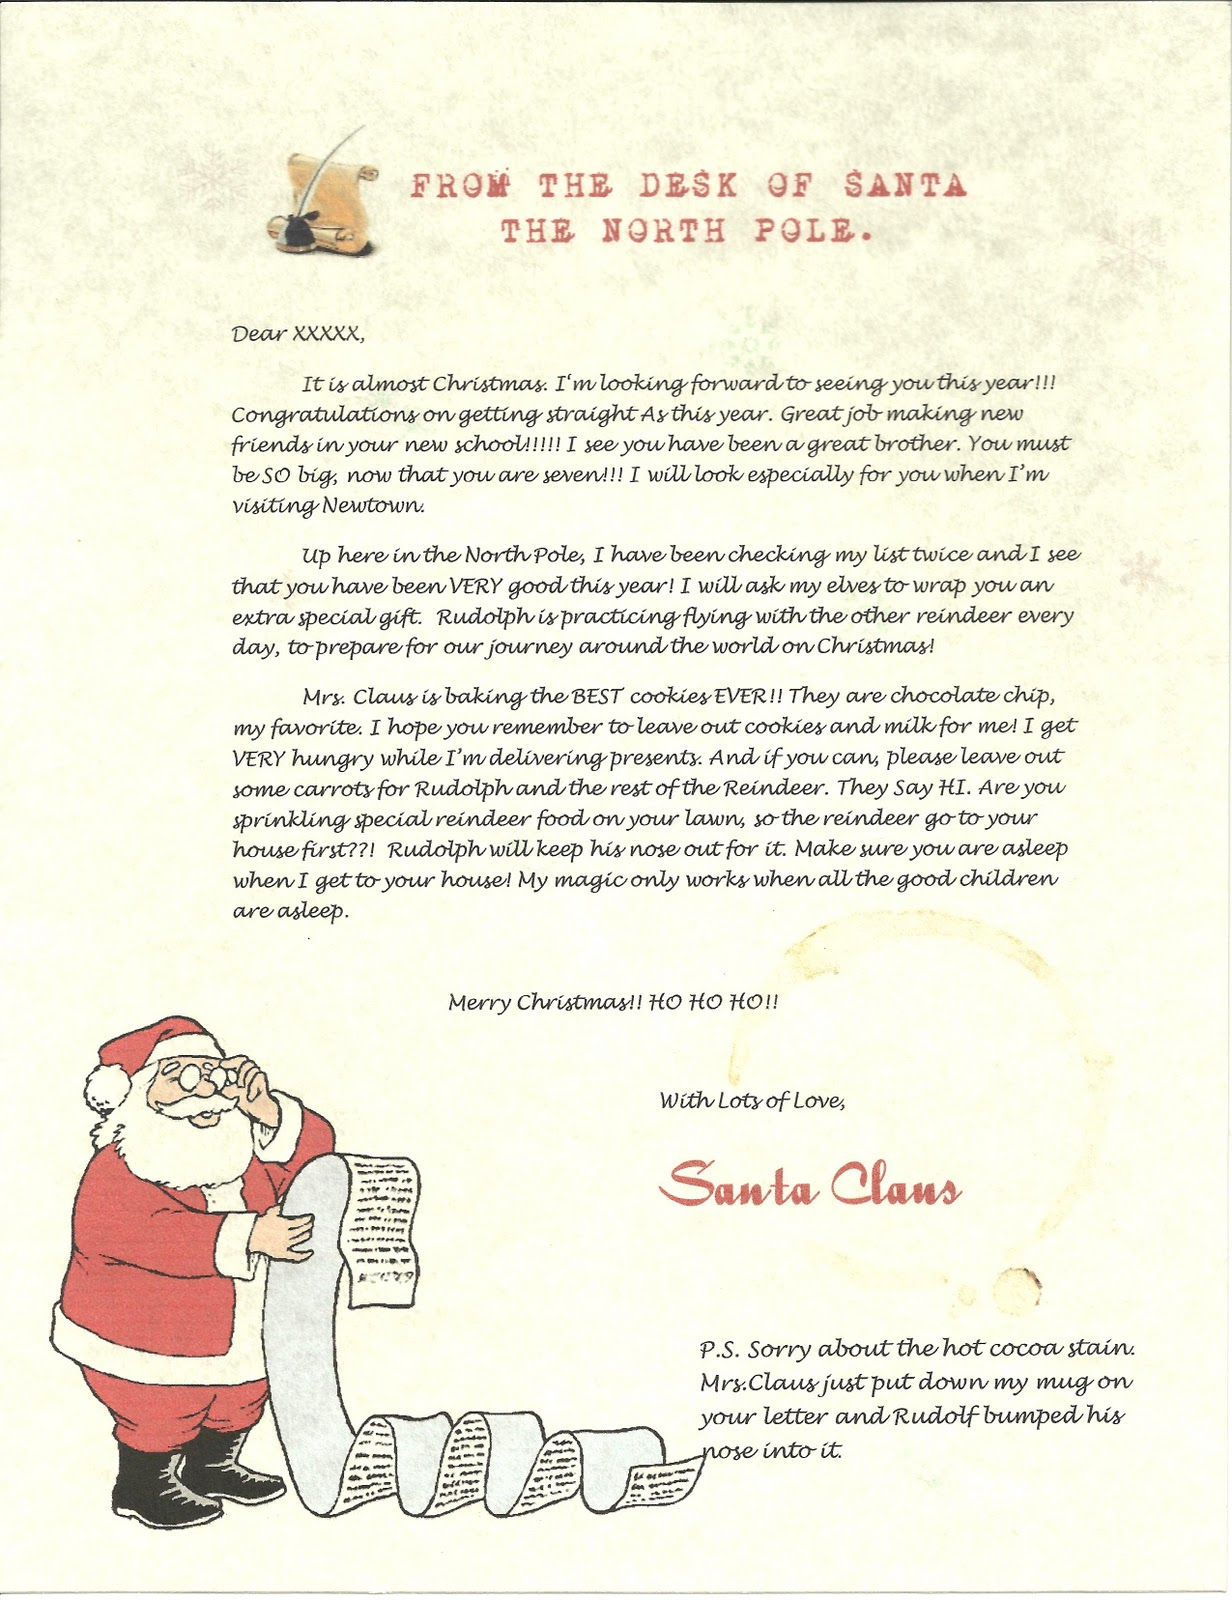 Email your letter to santa resume pdf download email your letter to santa letter from santa claus when u write santa see email wish spiritdancerdesigns Images